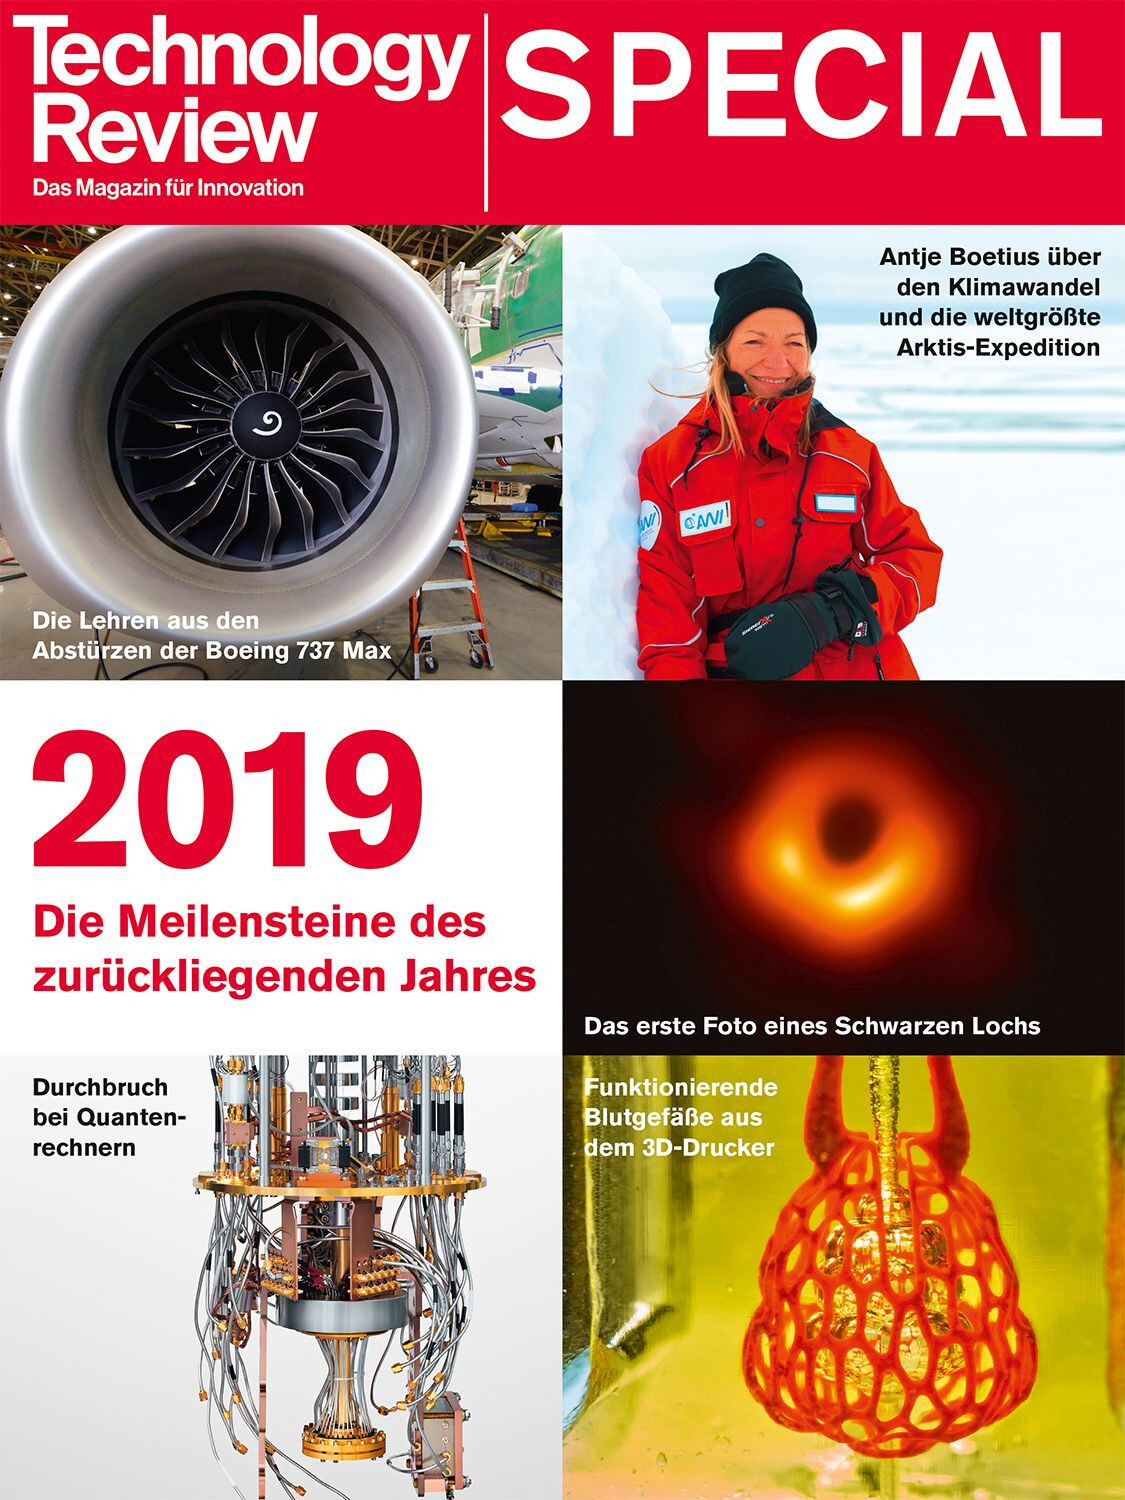 Technology Review 13/2019 SPECIAL